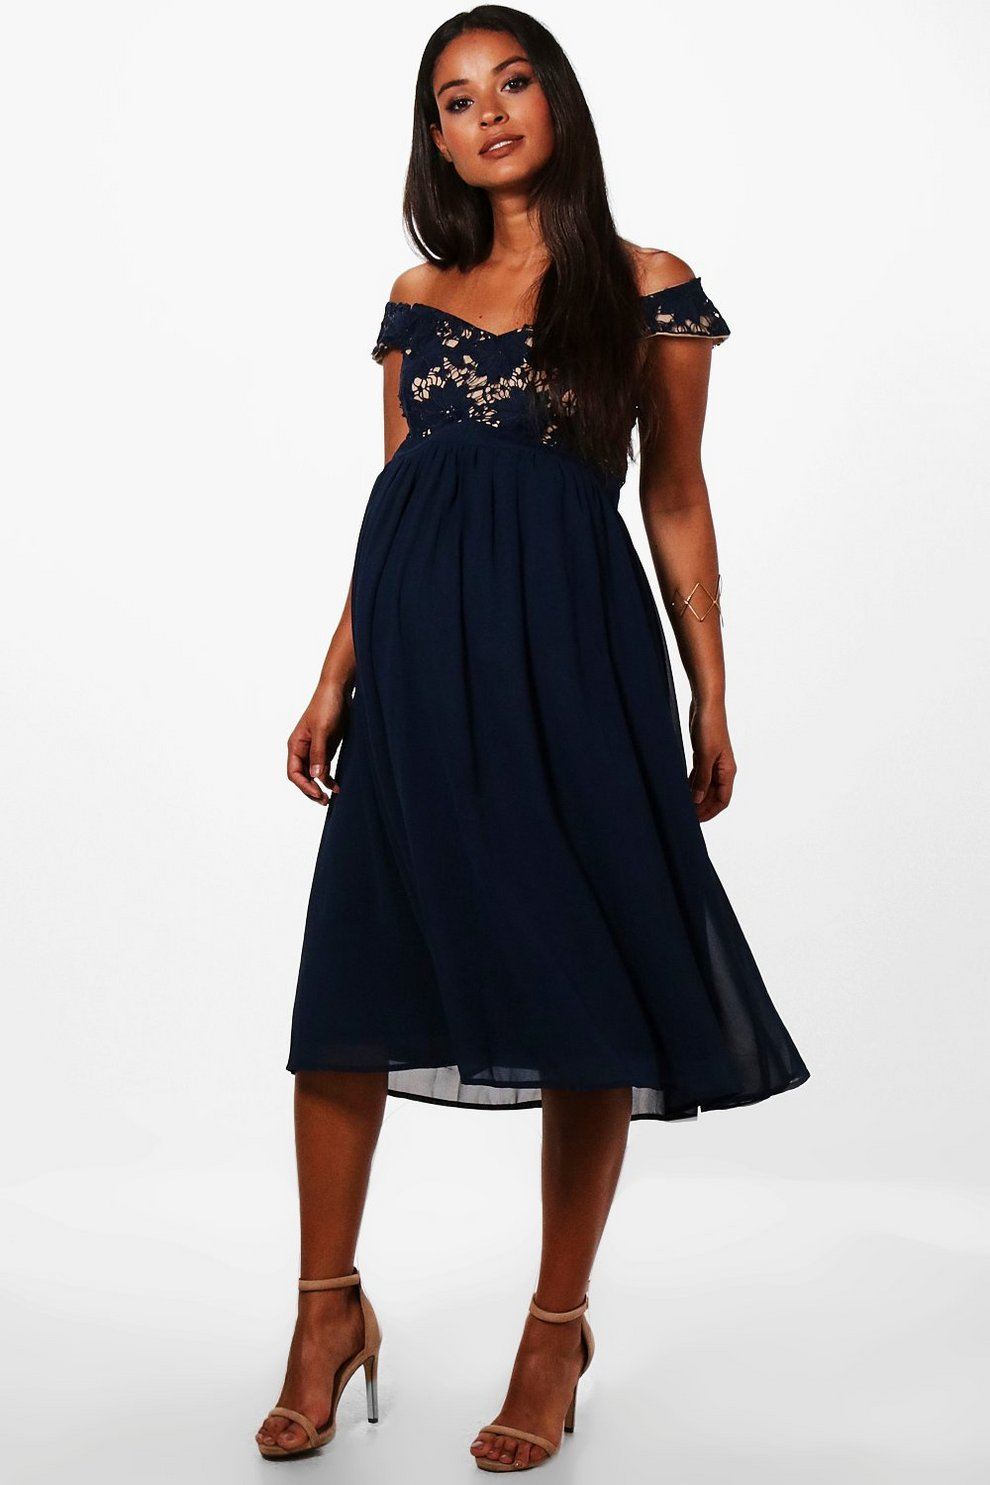 Boohoo Maternity Lace Off The Shoulder Chiffon Midi Dress